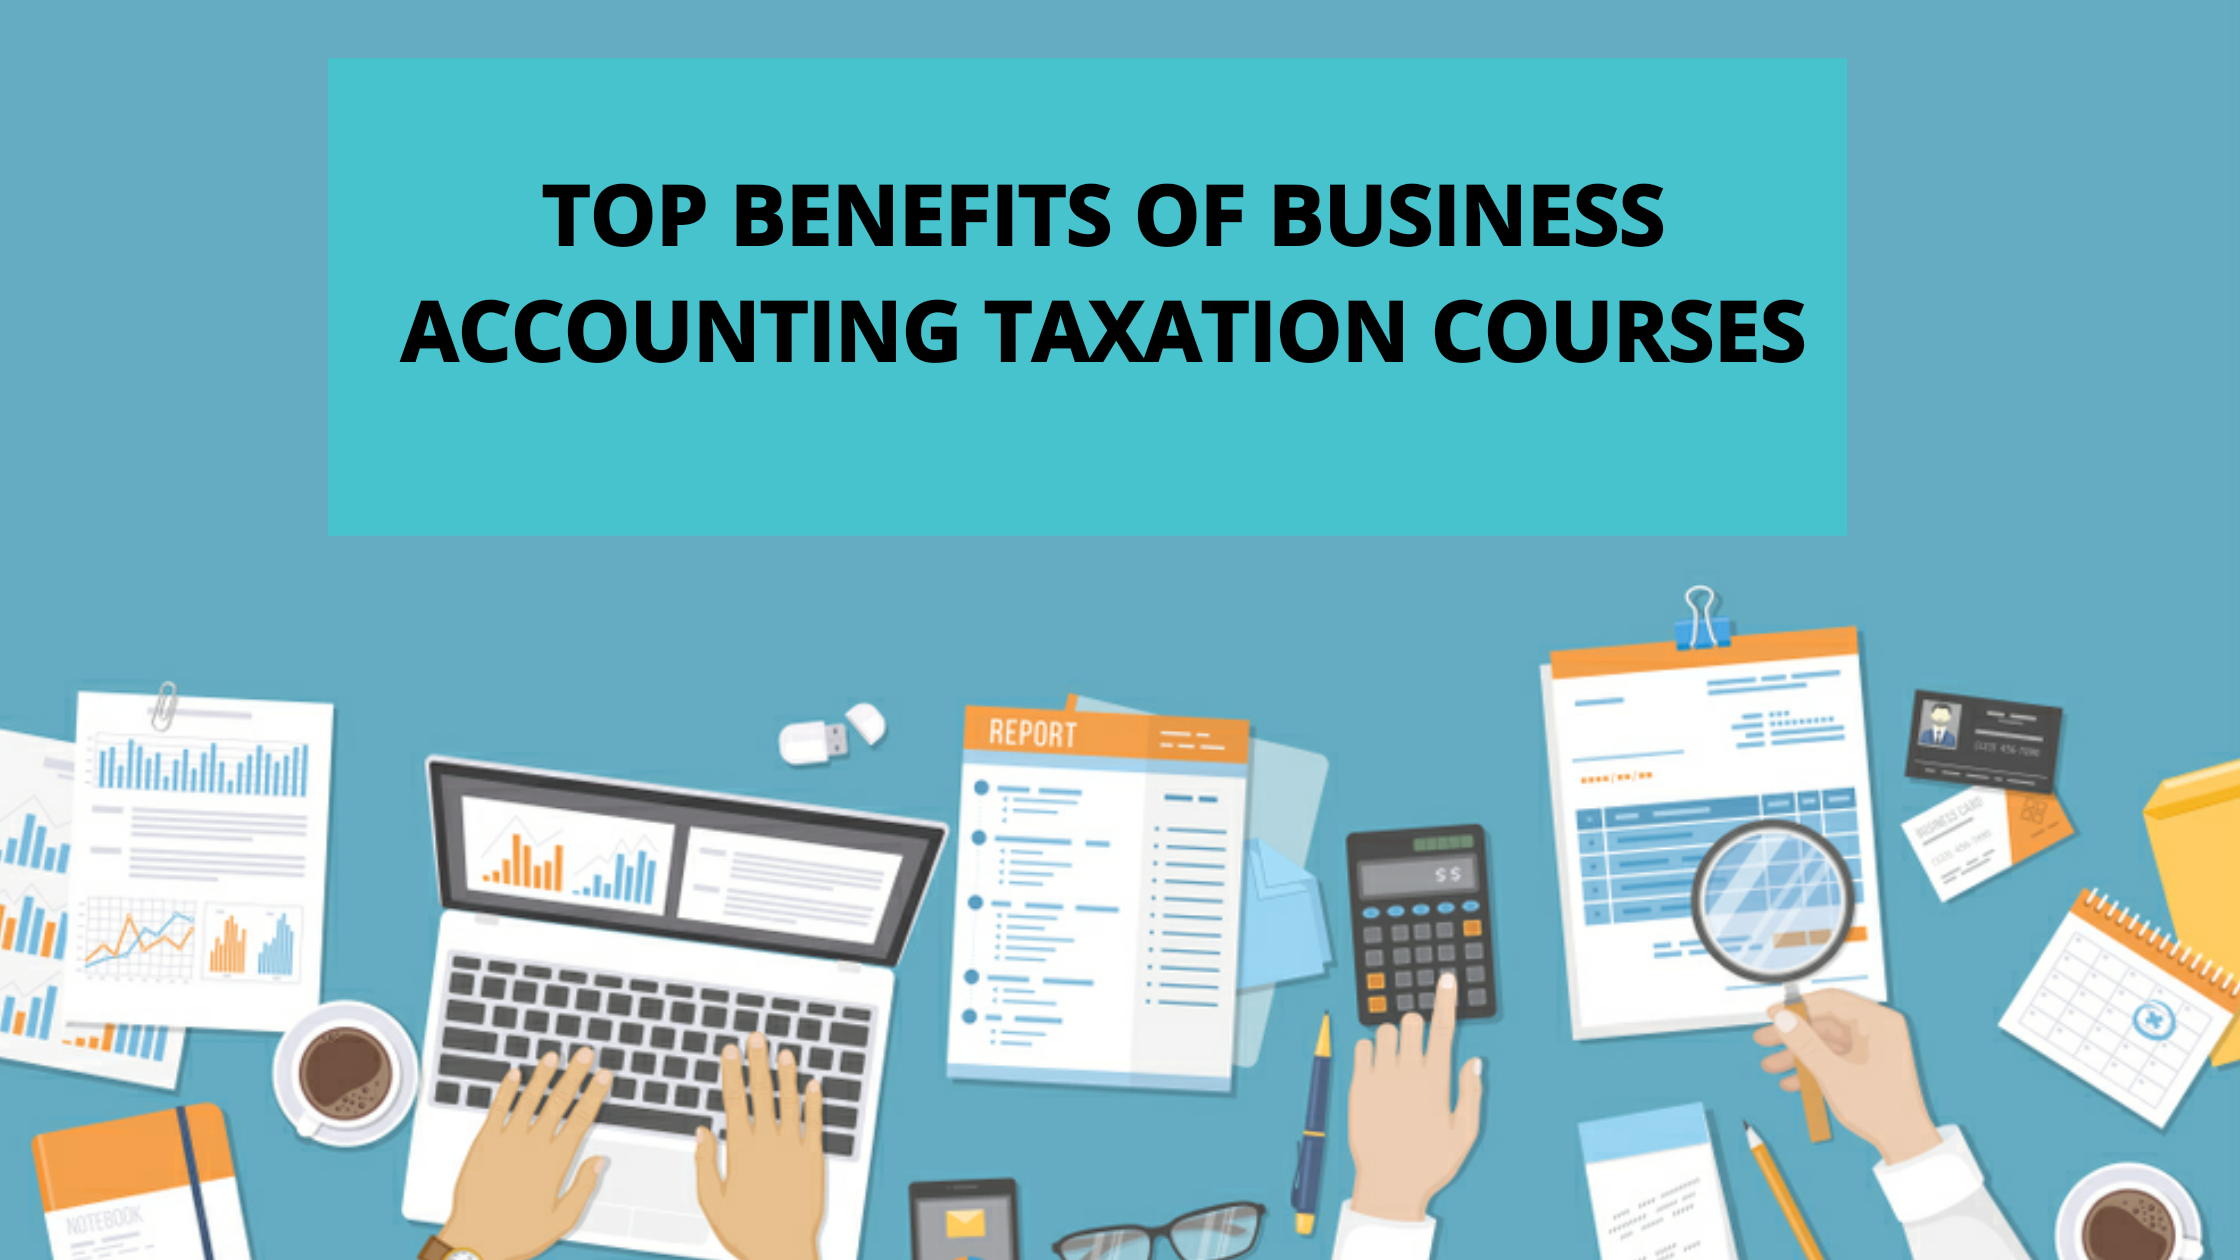 Top Benefits Of Business Accounting Taxation Courses